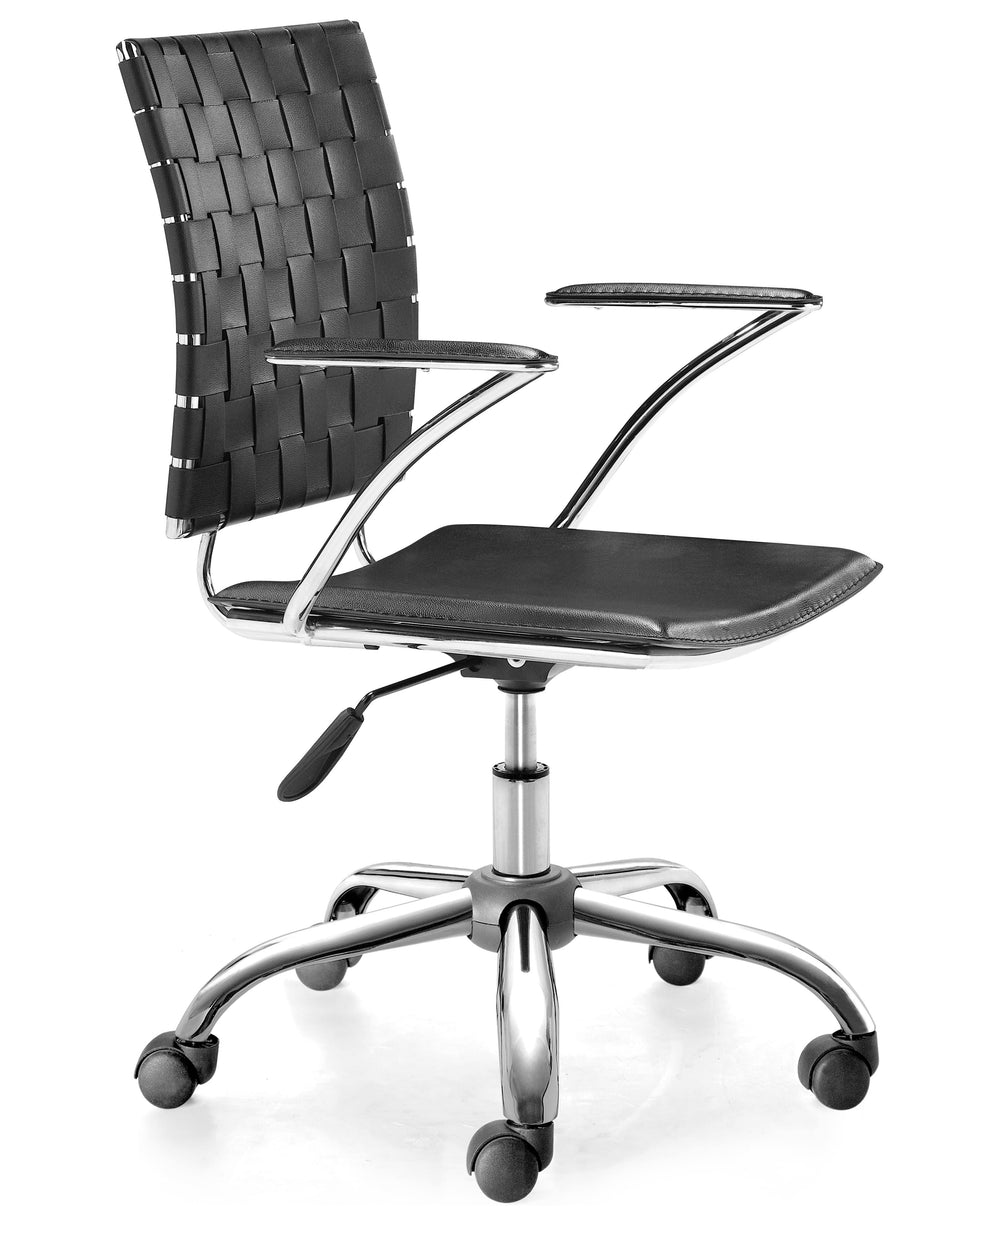 Criss Cross Office Chair Black - Furniture - Office - Chairs